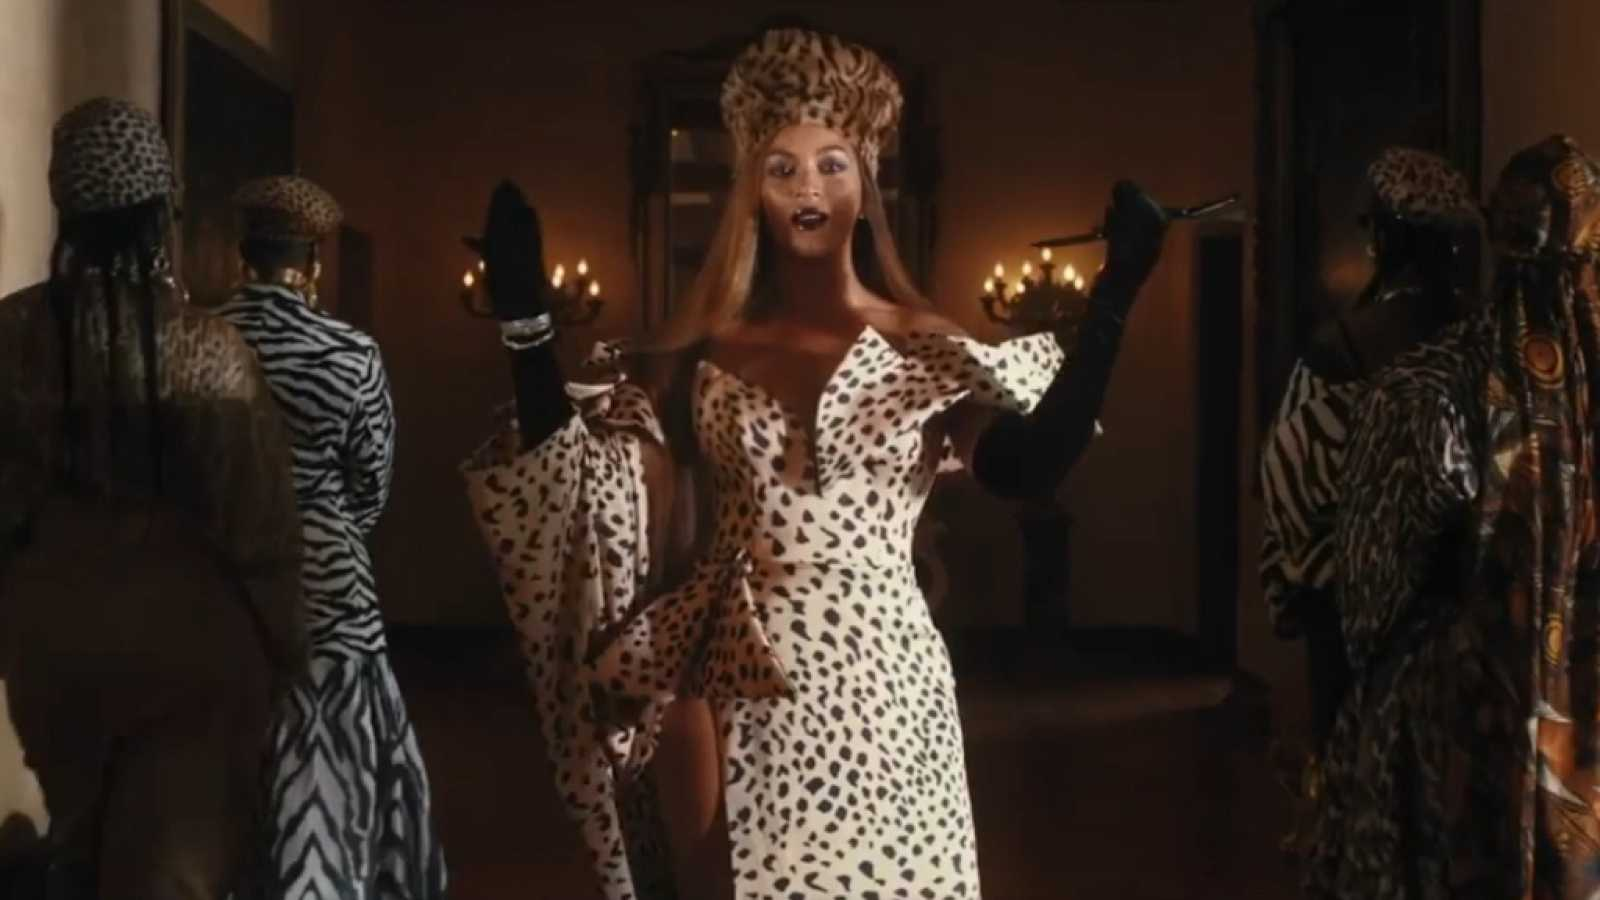 Beyoncé lanza el tráiler oficial de 'Black is King', su último álbum visual